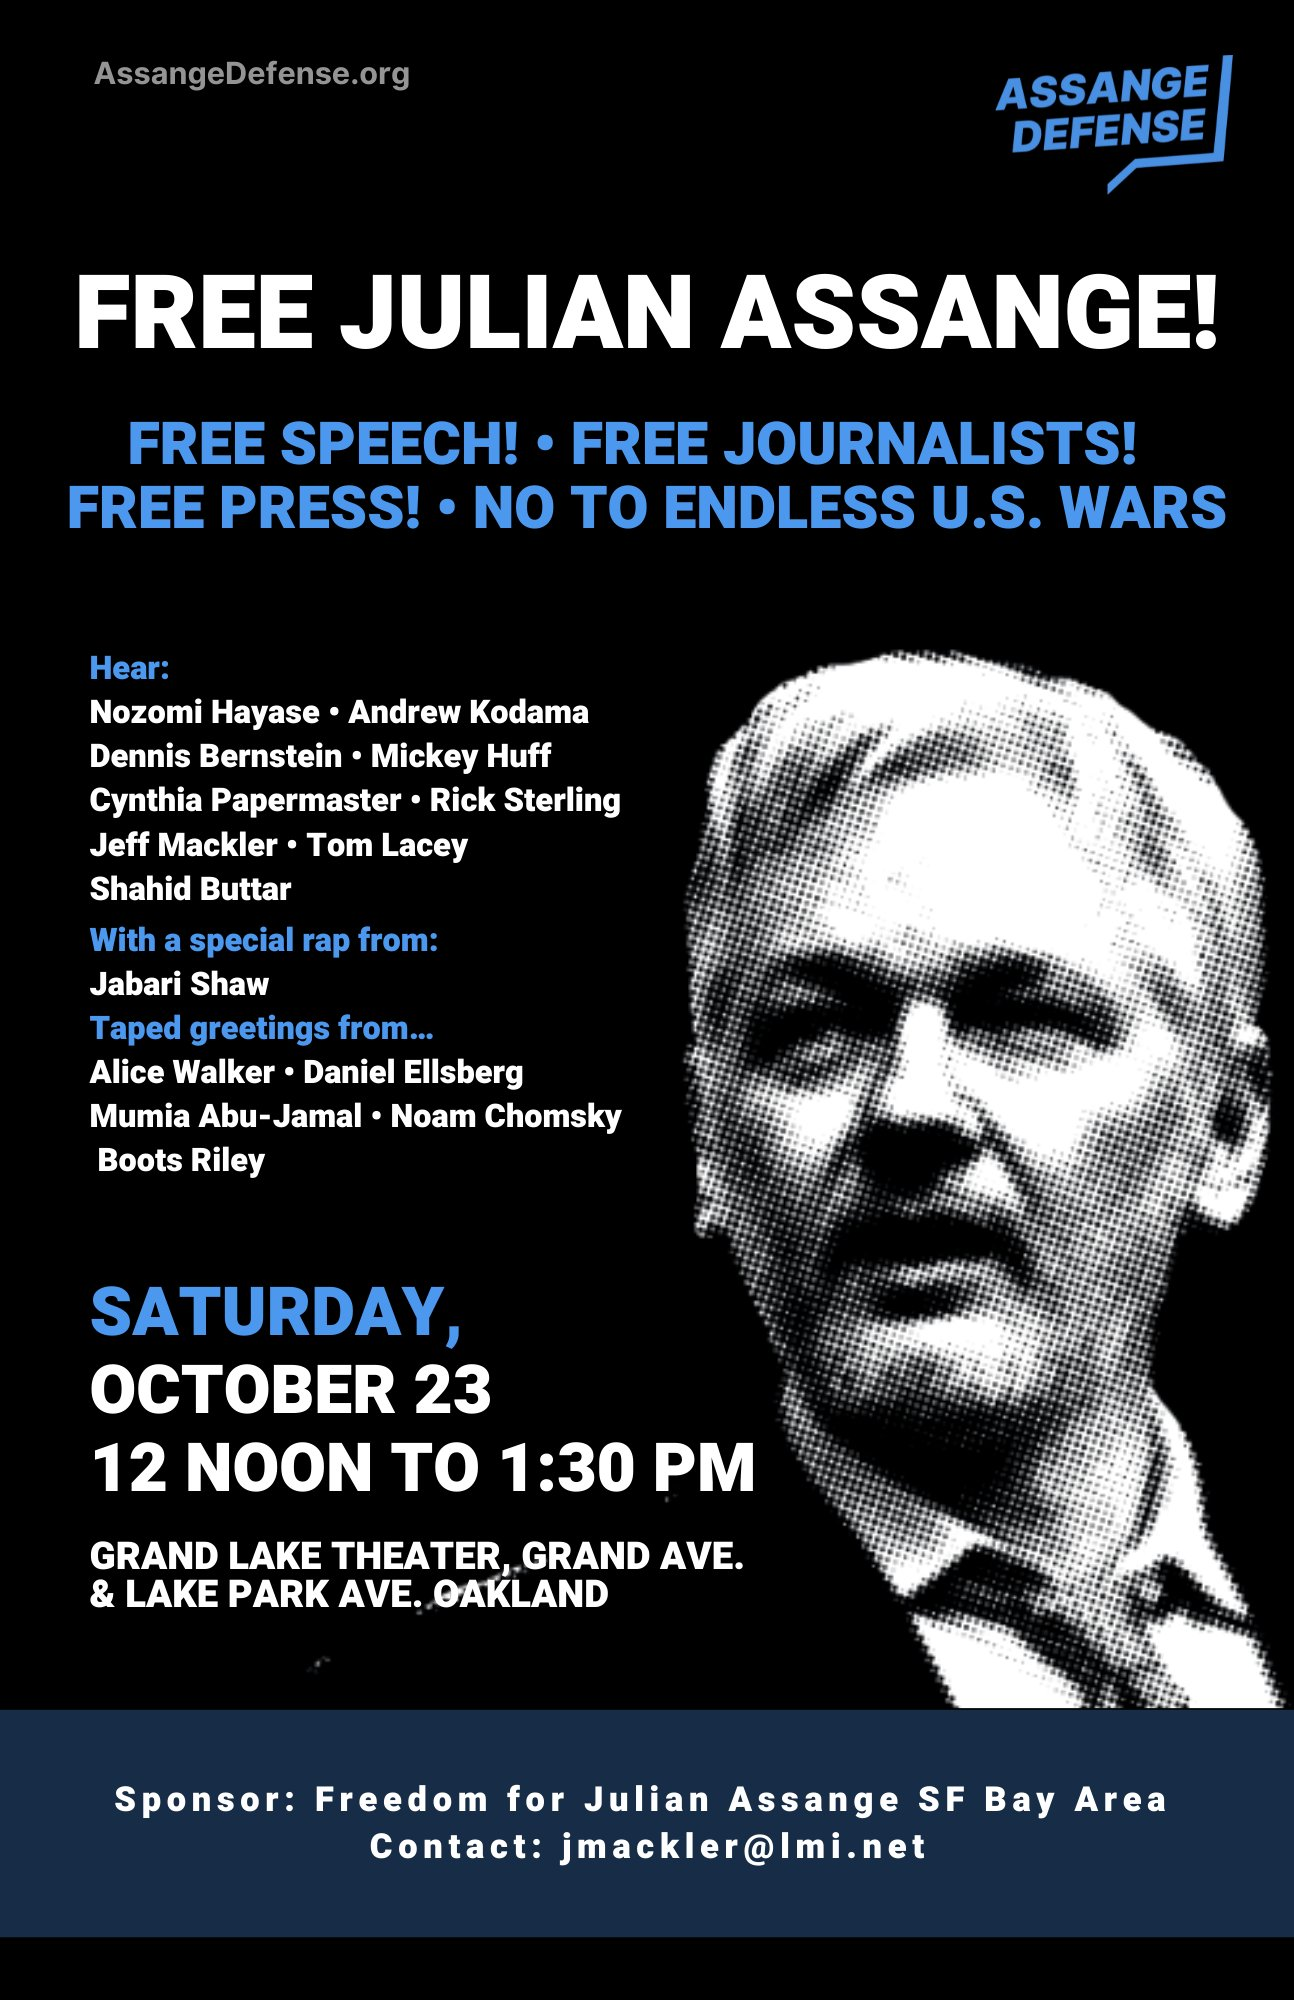 Flyer for today's rally to free Assange at Oakland's Grand Lake Theater from noon to 1:30pm, featuring Nozomi Hayase, Dennis Bernstein and others in person, with taped statements from Alice Walker, Noam Chomsky, Dan Ellsberg, Mumia Abu Jamal, Boots Reilly, and more.